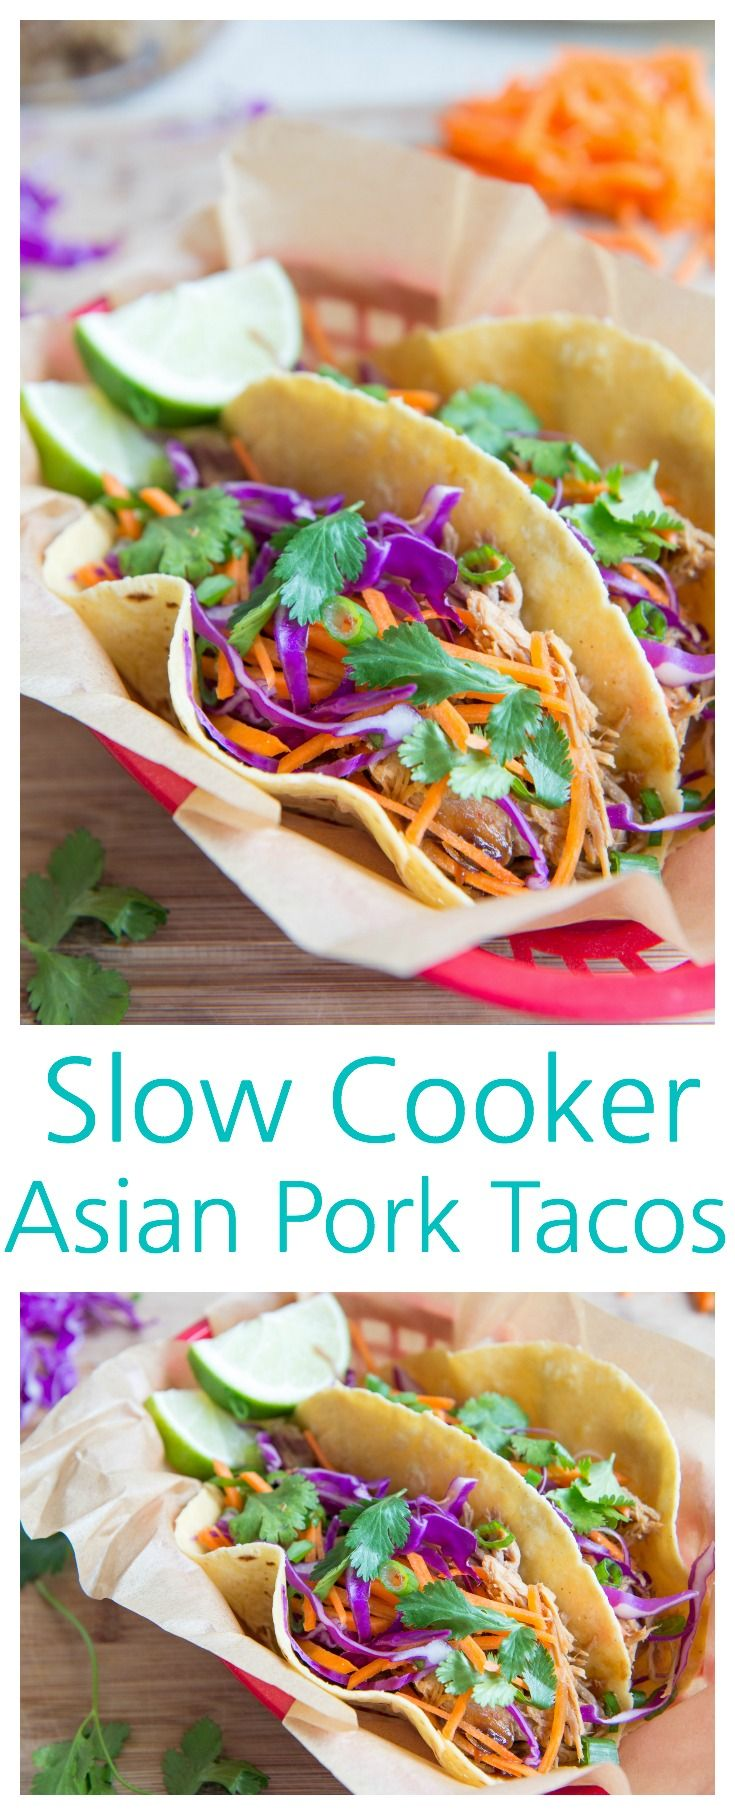 These Slow Cooker Asian Pork Tacos are fantastic for weeknight dinners. The pork only needs five minutes of prep before cooking low and slow in the crockpot, then the meat is shredded for taco time! from @fifteenspatulas